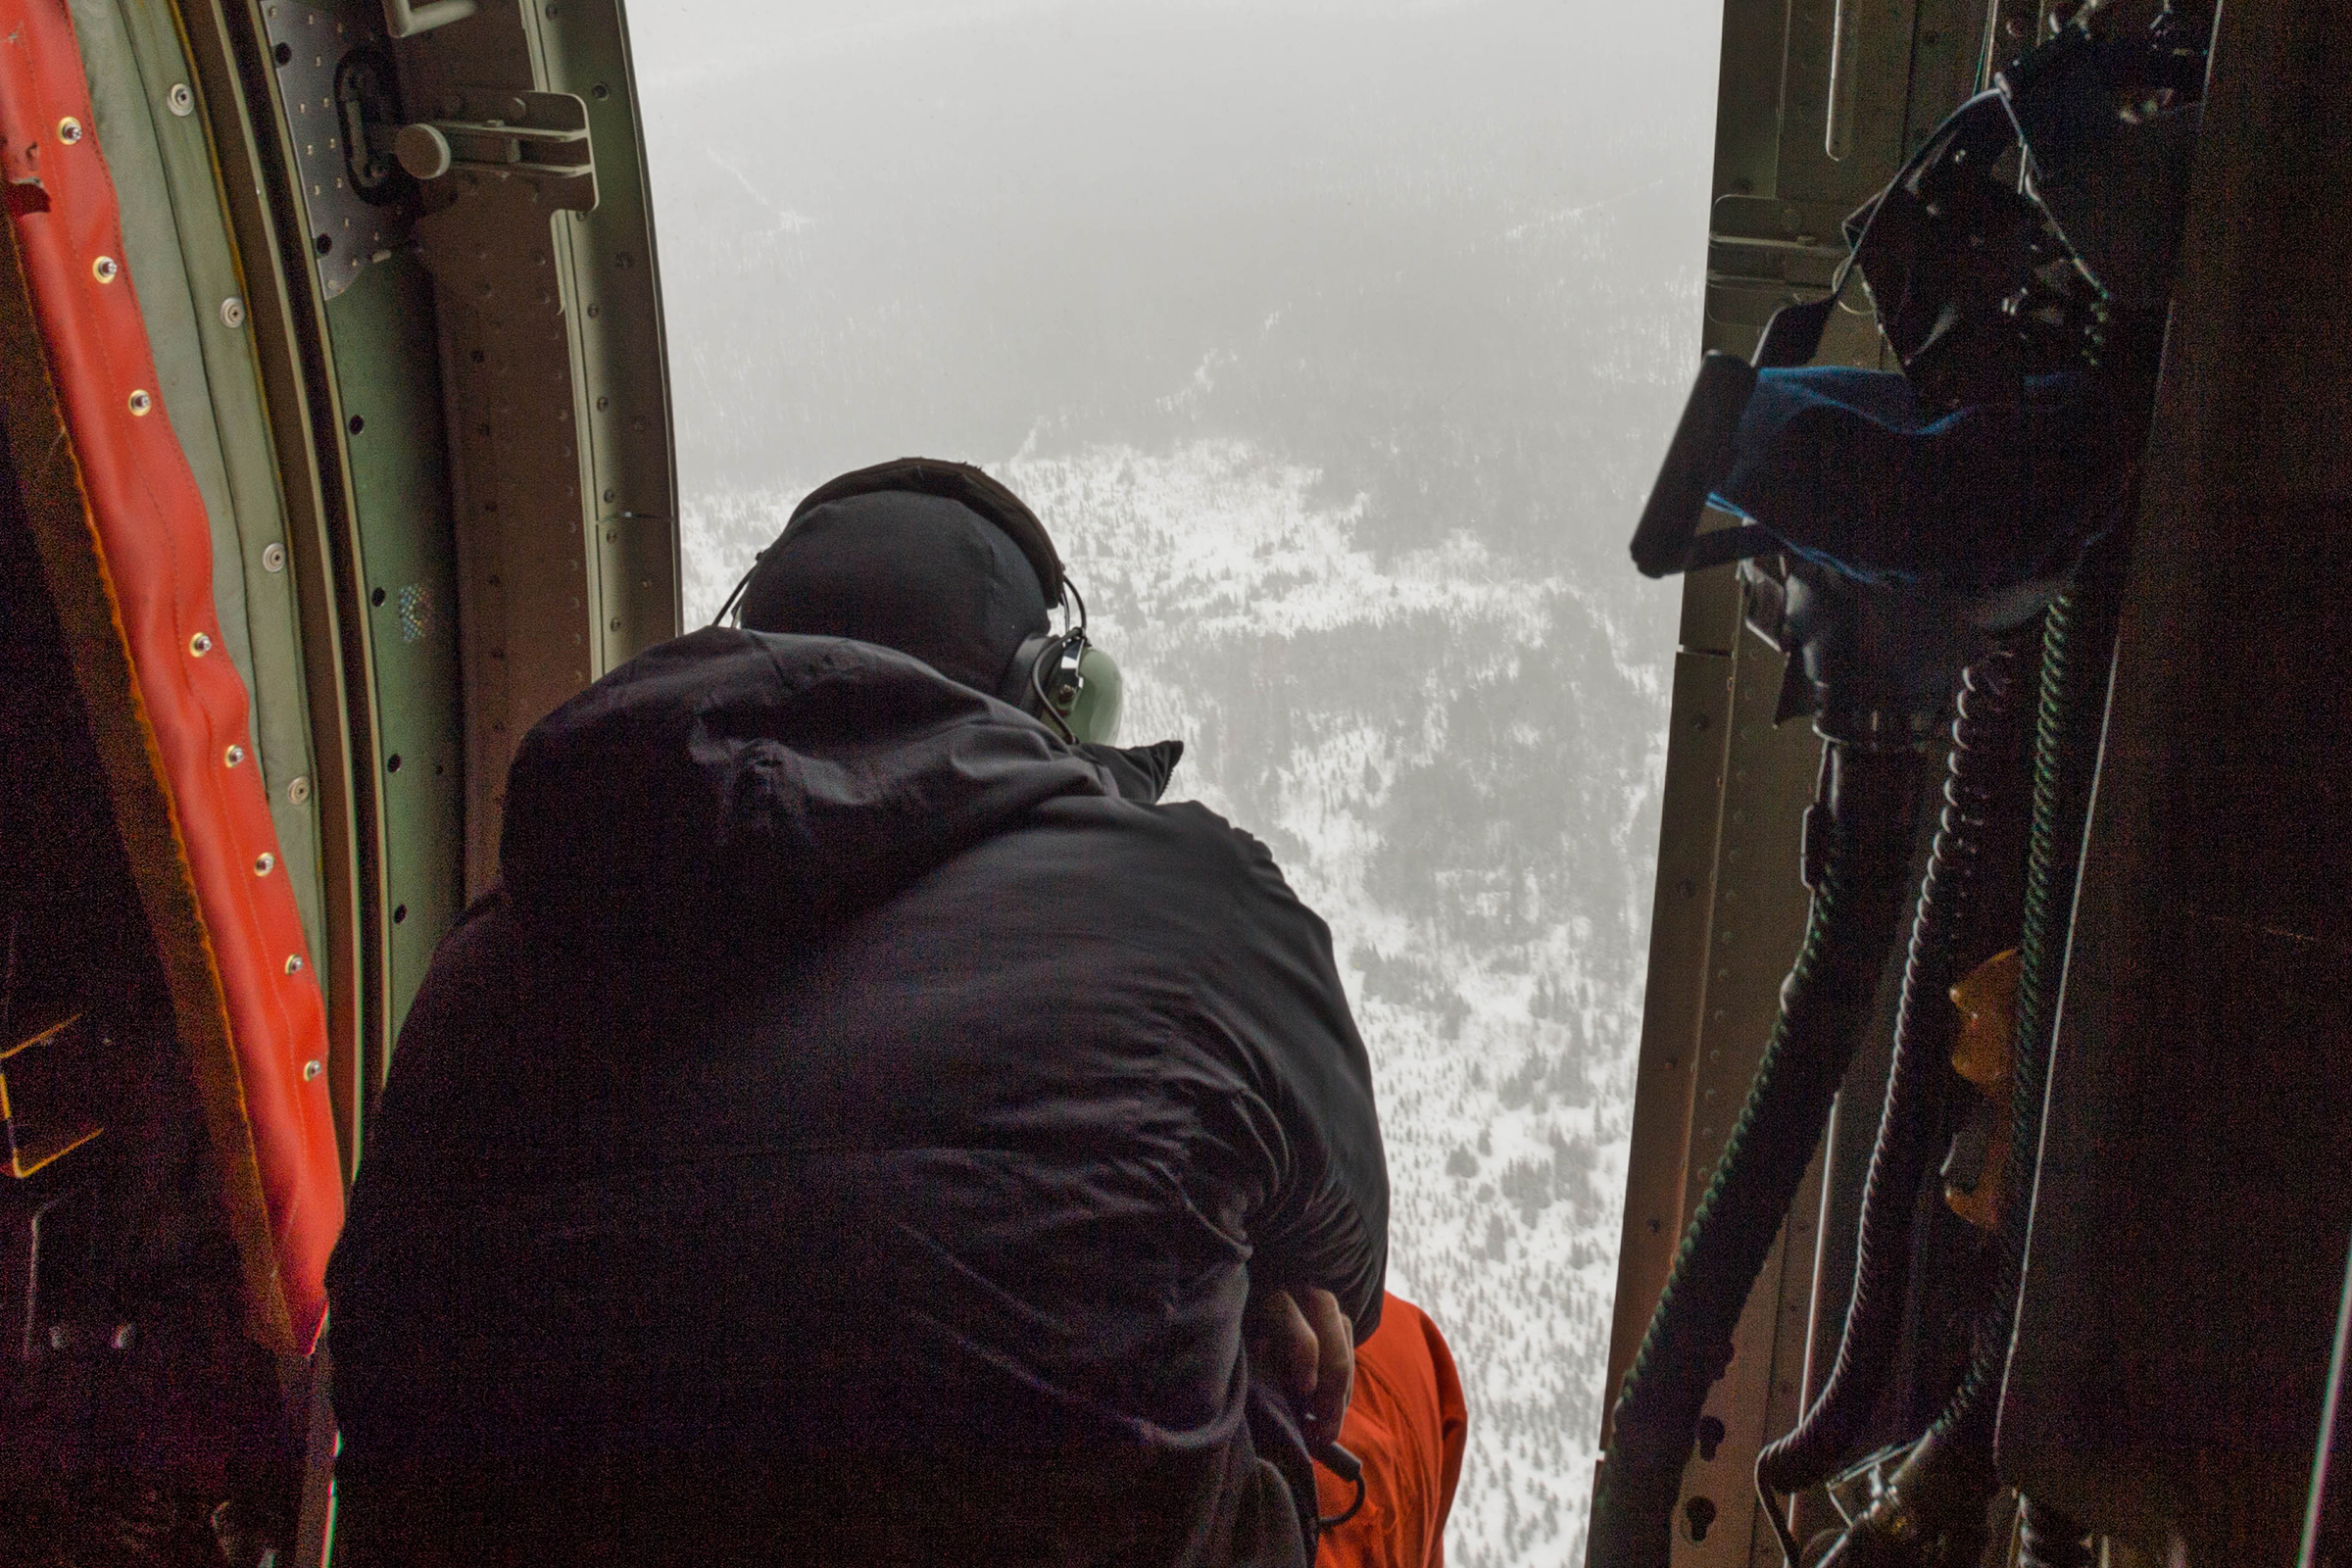 A search and rescue technician, onboard an RCAF CC-130 Hercules aircraft from 435 Transport and Rescue Squadron, based in Winnipeg Manitoba, watches the inhospitable terrain below during a search and rescue mission in the Timmins, Ontario, area on March 10, 2019. PHOTO: Corporal Zebulon Salmaniw, TN07-2019-0090-024